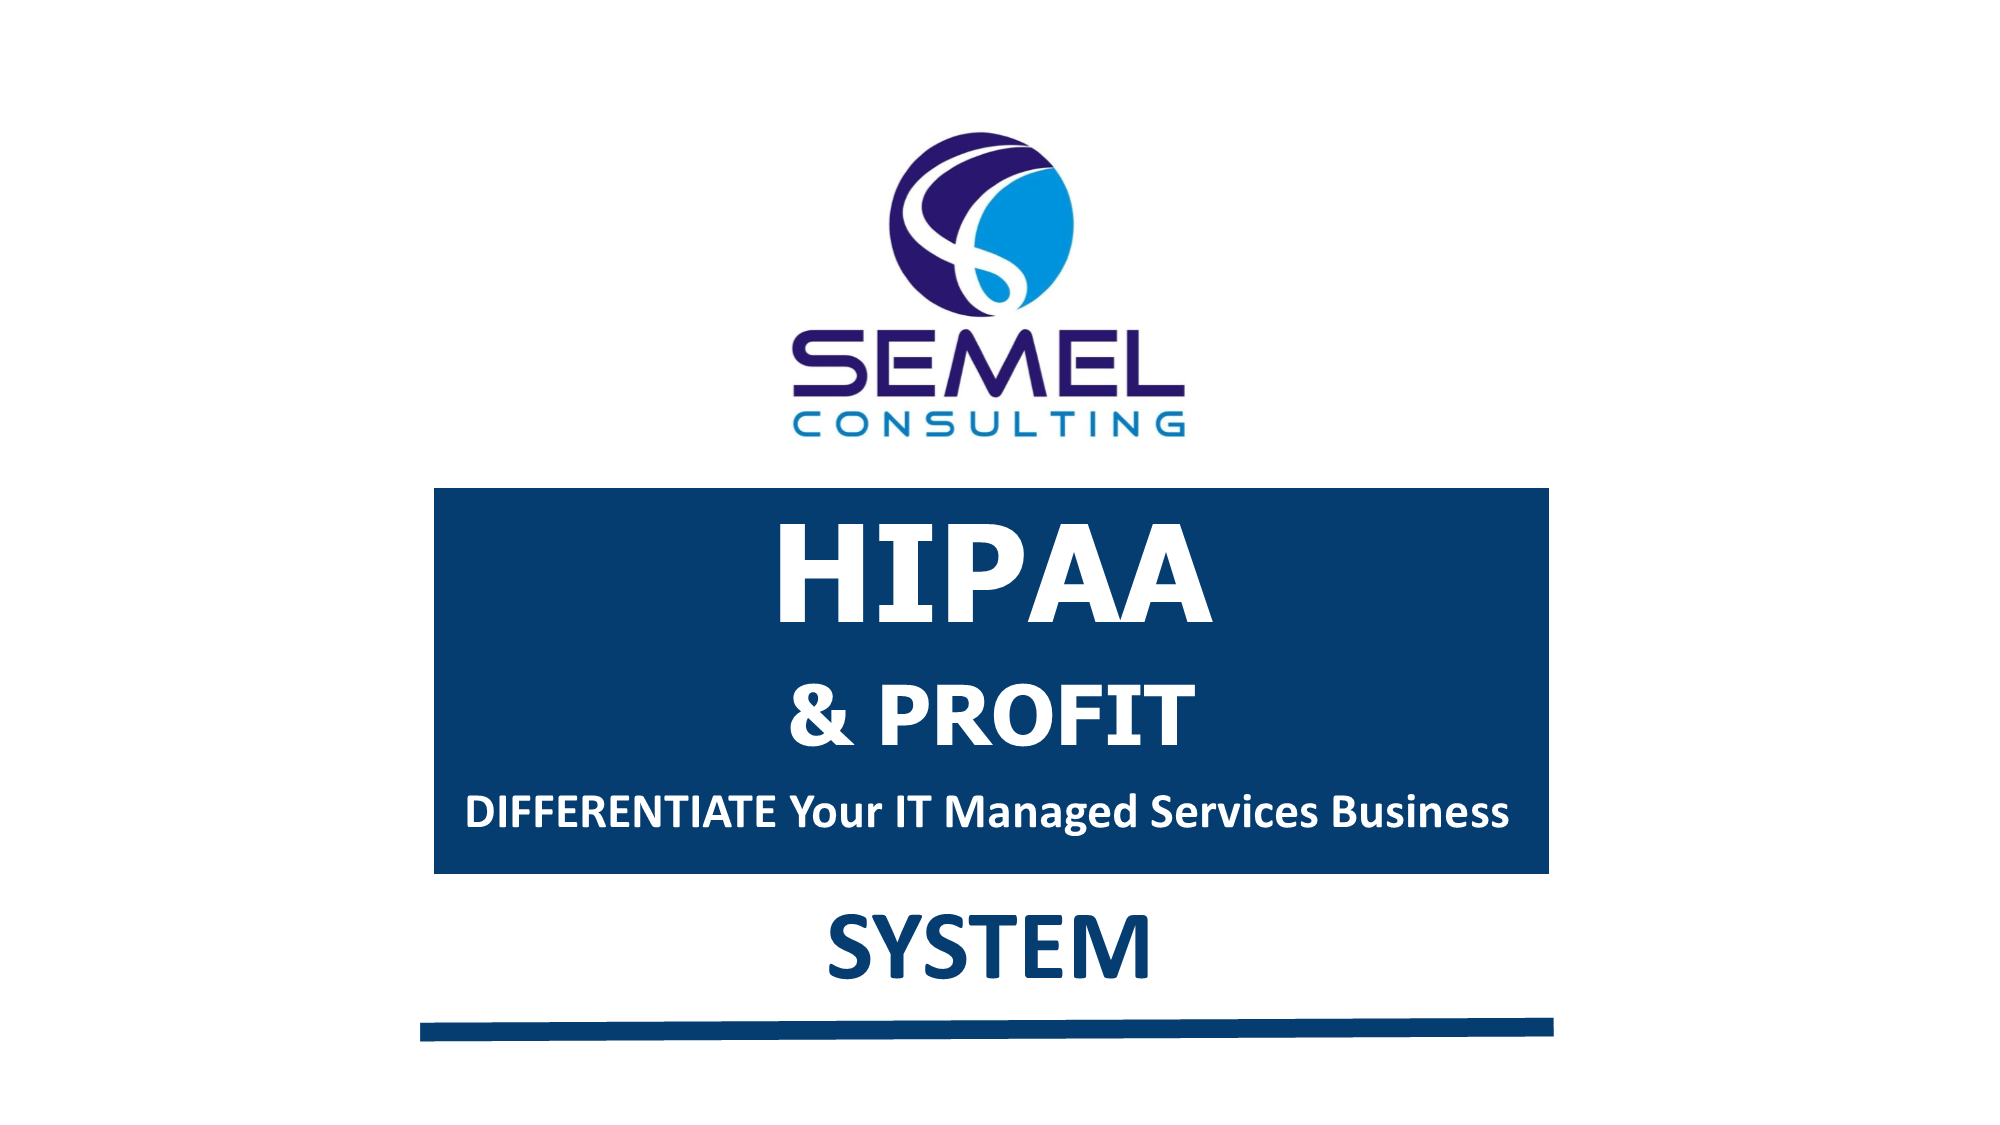 HIPAA & Profit System for MSPs | Semel Consulting